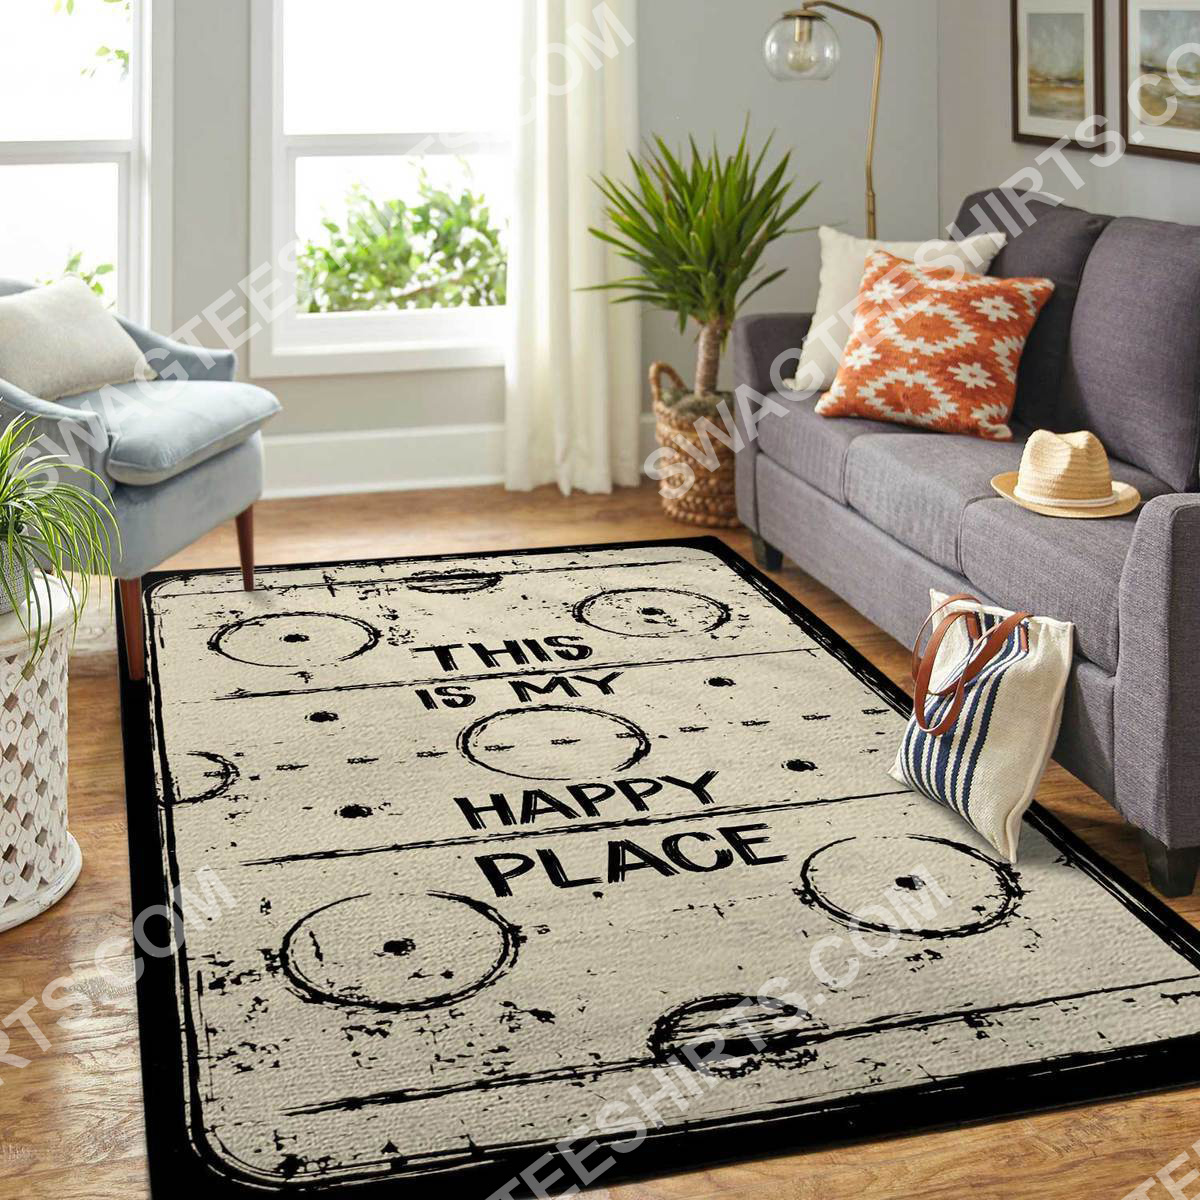 this is my happy place rectangle hockey all over printed rug 2(1)